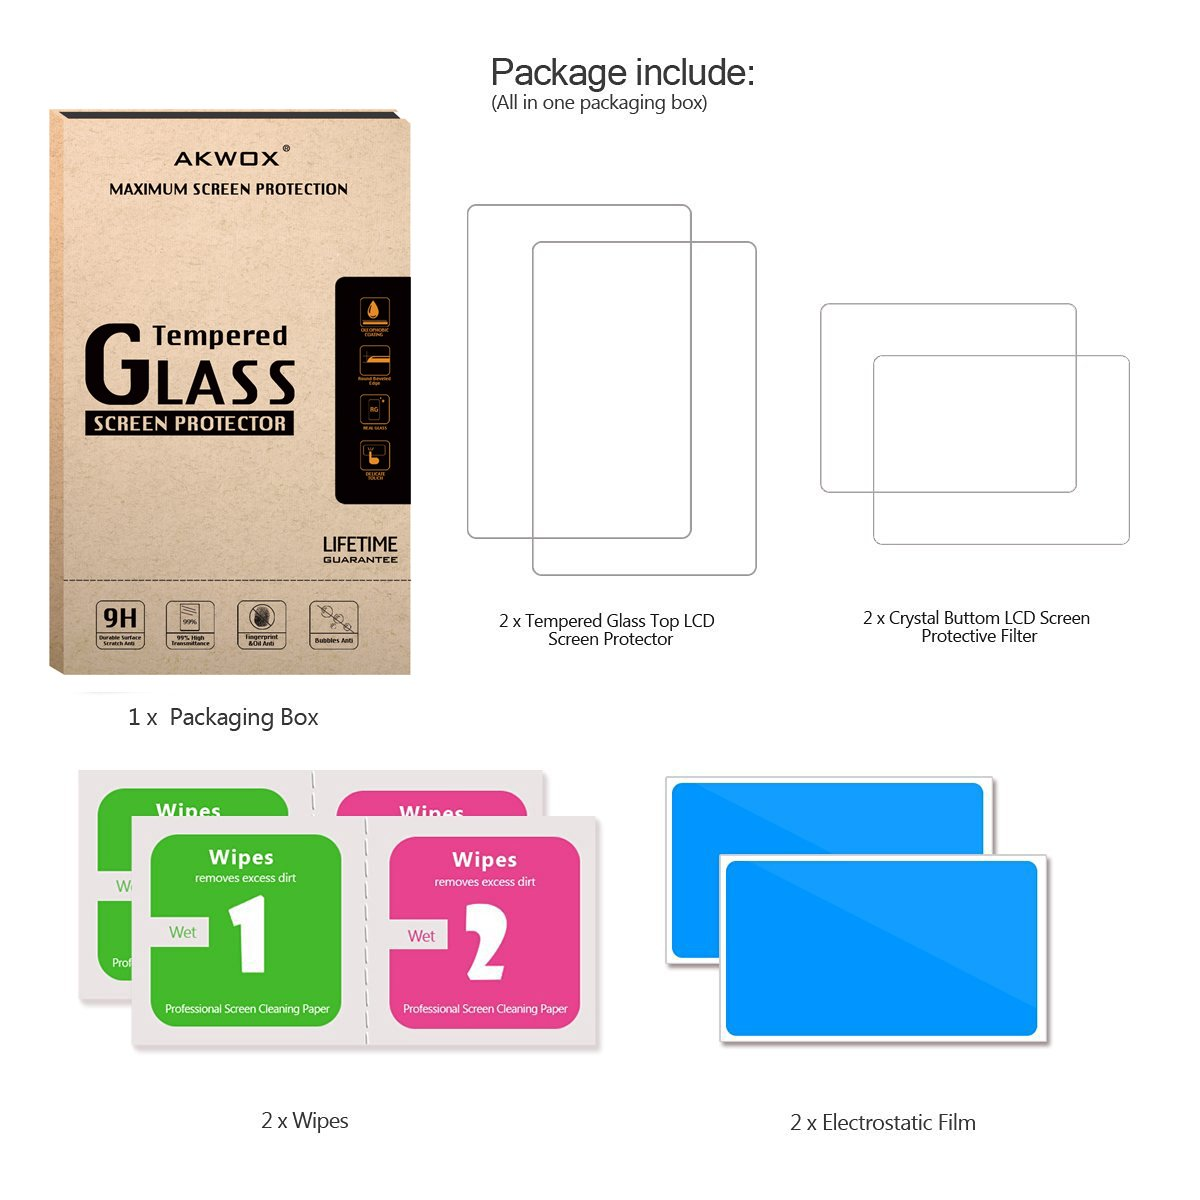 Akwox 2 In 1 9h Tempered Glass Top Lcd Screen Protector With Hd For New 3ds Xl Ll Hori Clear Crystal Pet Buttom Protective Filter Nintendo